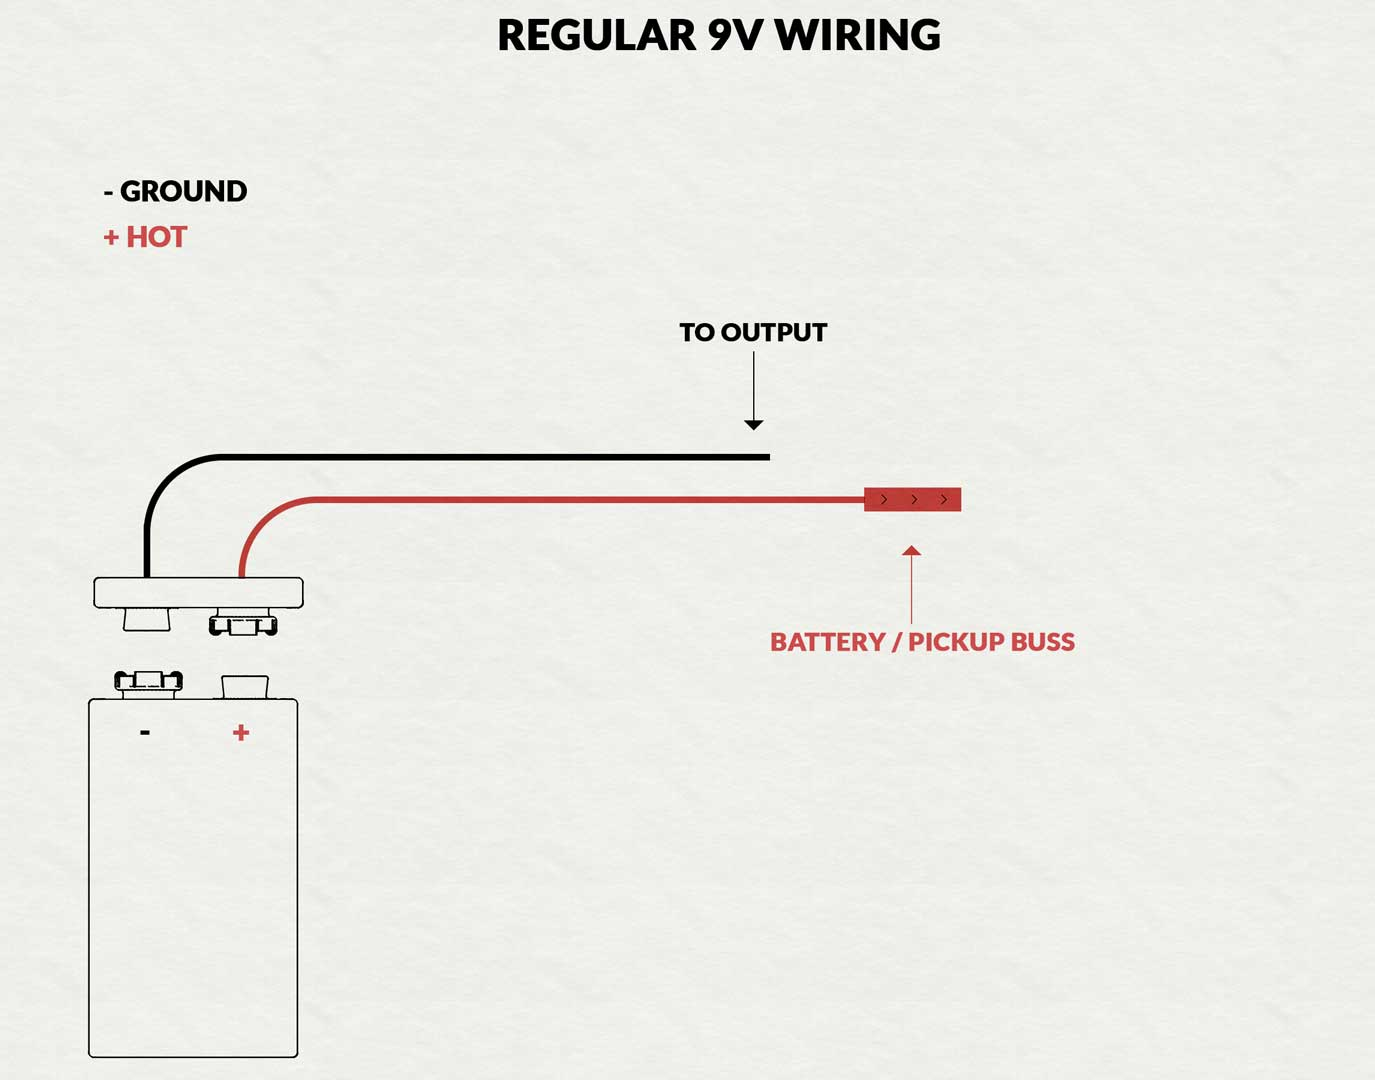 9v battery diagram 2002 chevy impala ls radio wiring 18v modification for active pickups electric herald